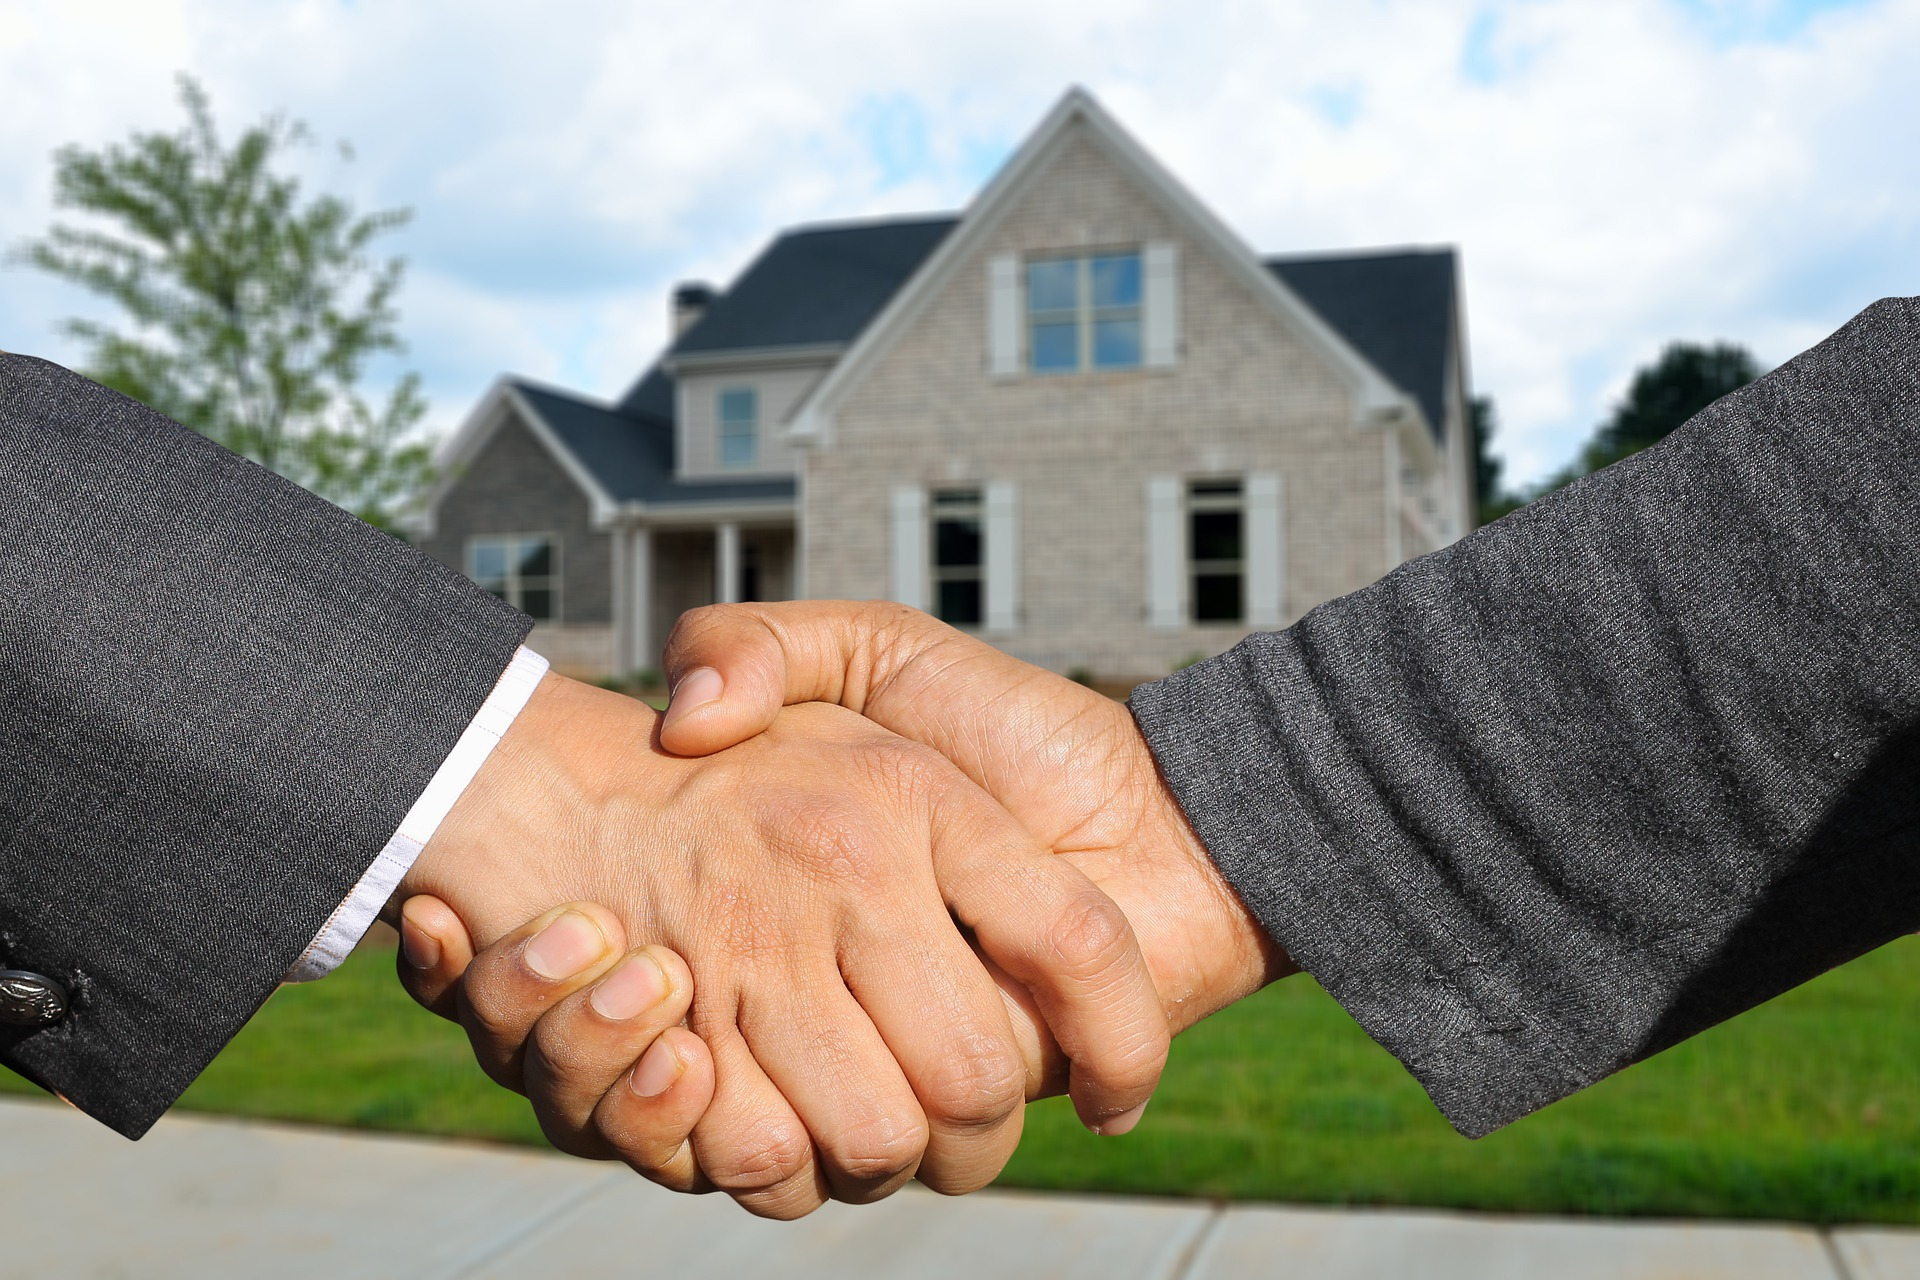 Finding a trustworthy realtor can be as easy as a handshake in front of your new home.